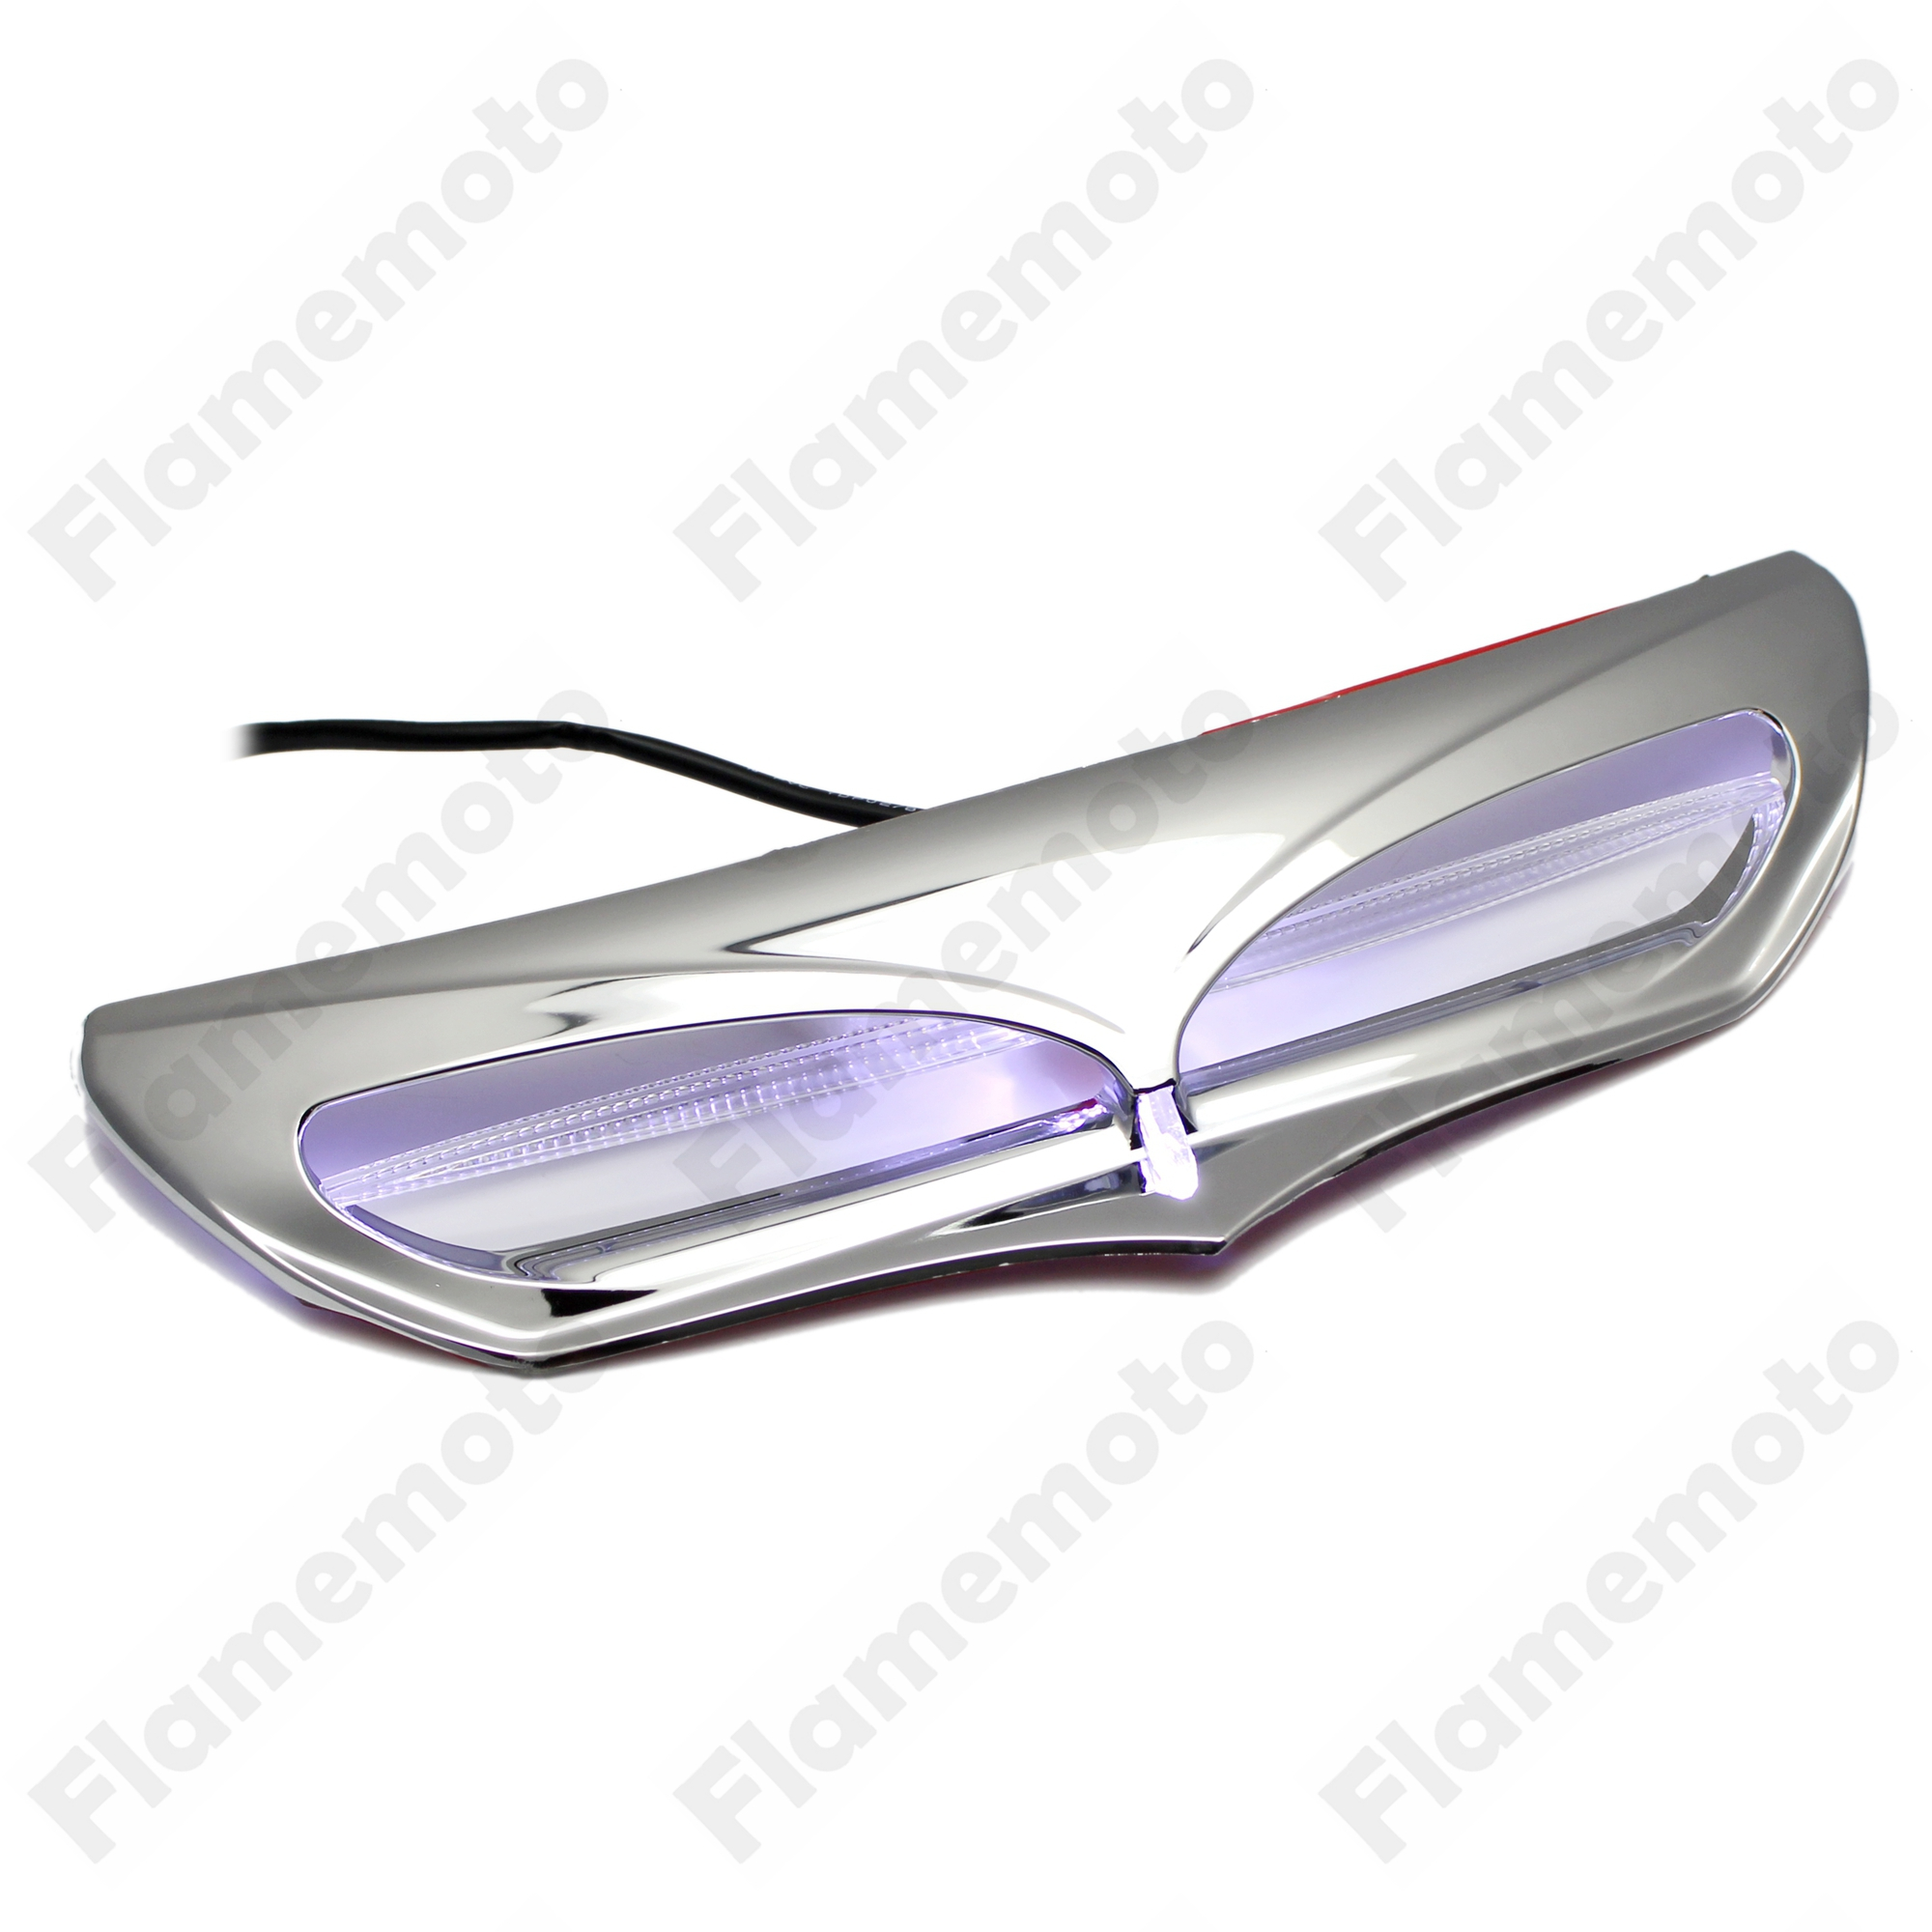 Motorcycle Chrome Batwing Fairing Vent Trim with LED Accent Lights Cover For Harley Touring Road King Street Electra Glide  fairing vent cover abs chrome batwing fairing vent trim with led accent lights cover for harley street glide efi flhx 14 16